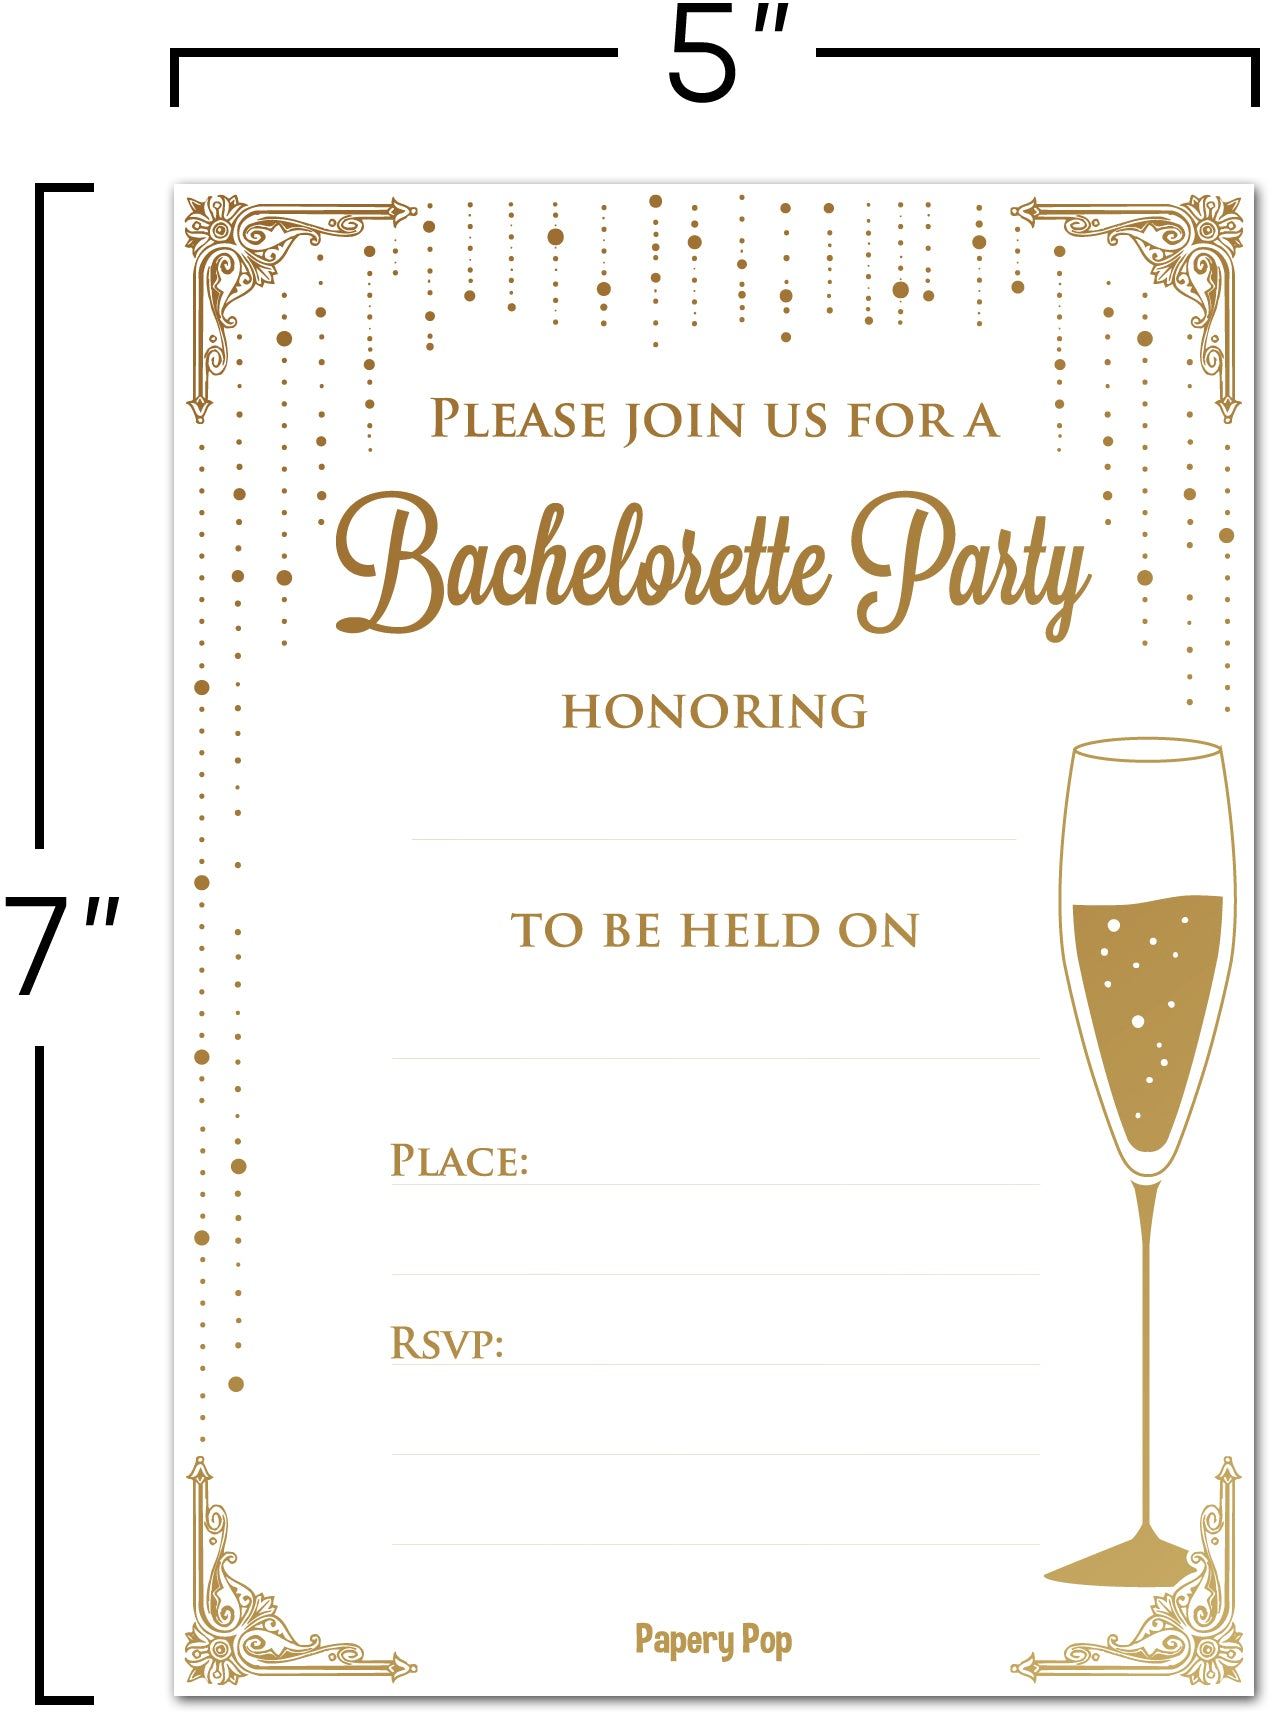 30 Bachelorette Party Invitations with Envelopes - Girl\'s Night Out ...